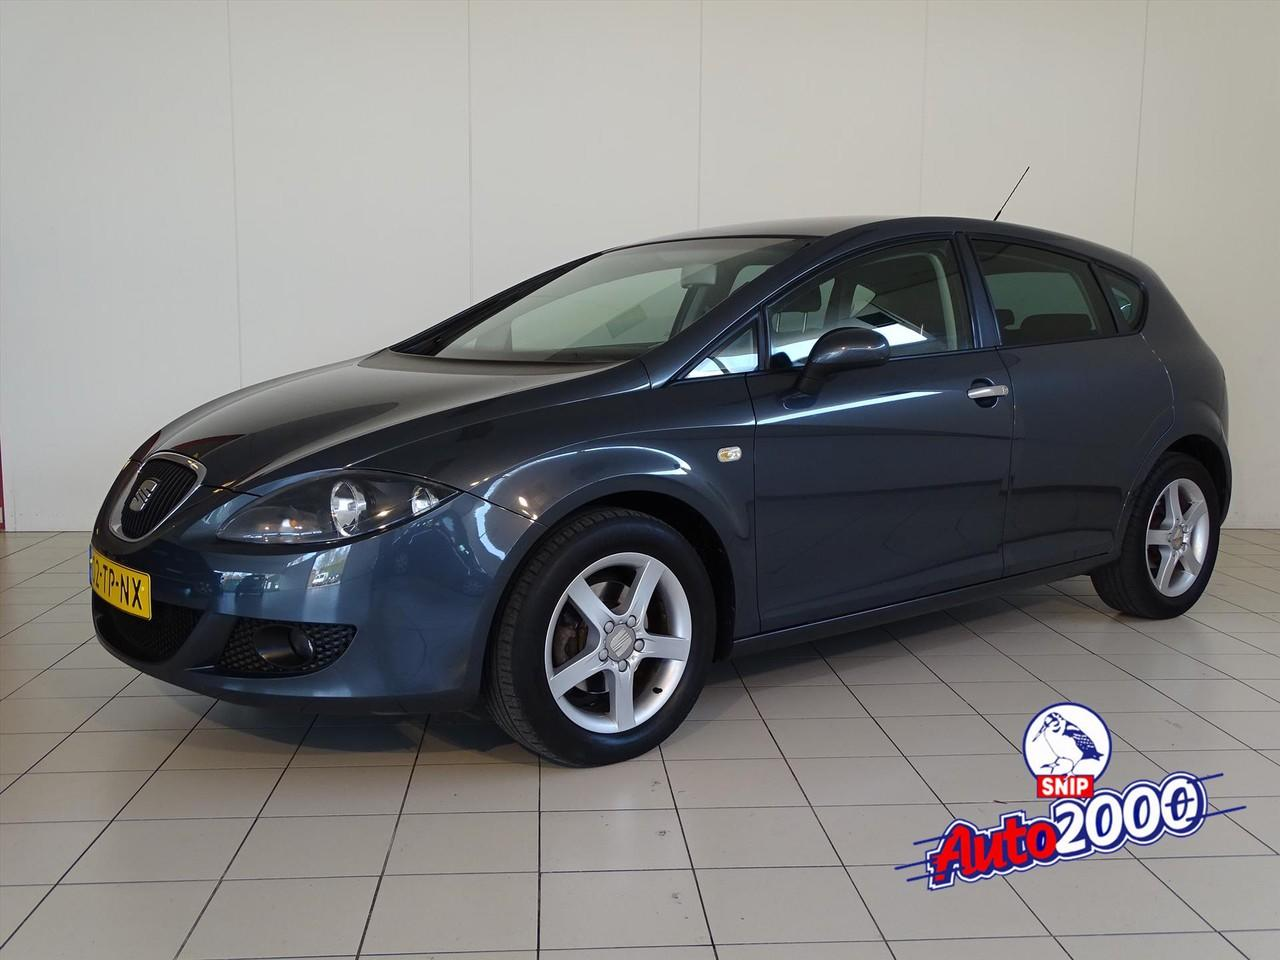 Seat Leon 1.6 75kw reference